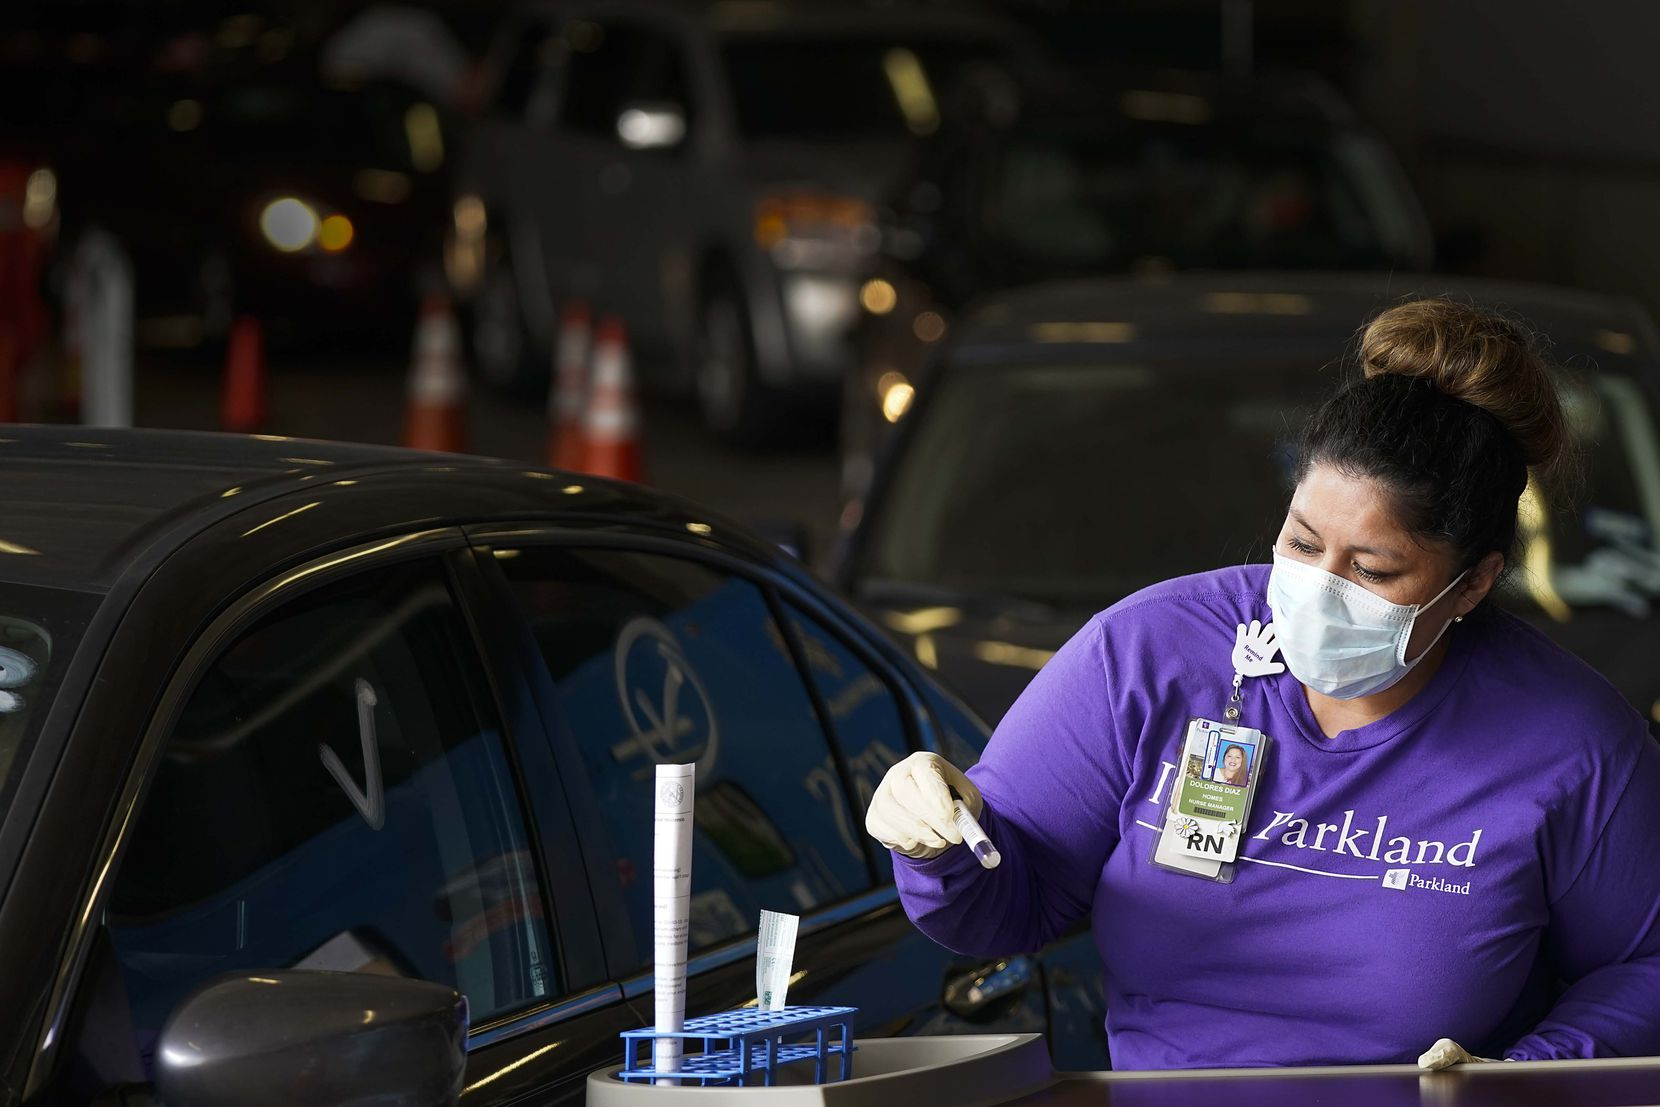 Parkland Homeless Outreach Medical Services (HOMES) program nurse manager Dolores Diaz prepares testing materials at a COVID-19 drive-through testing site at American Airlines Center on Monday, April 20, 2020, in Dallas. (Smiley N. Pool/The Dallas Morning News)